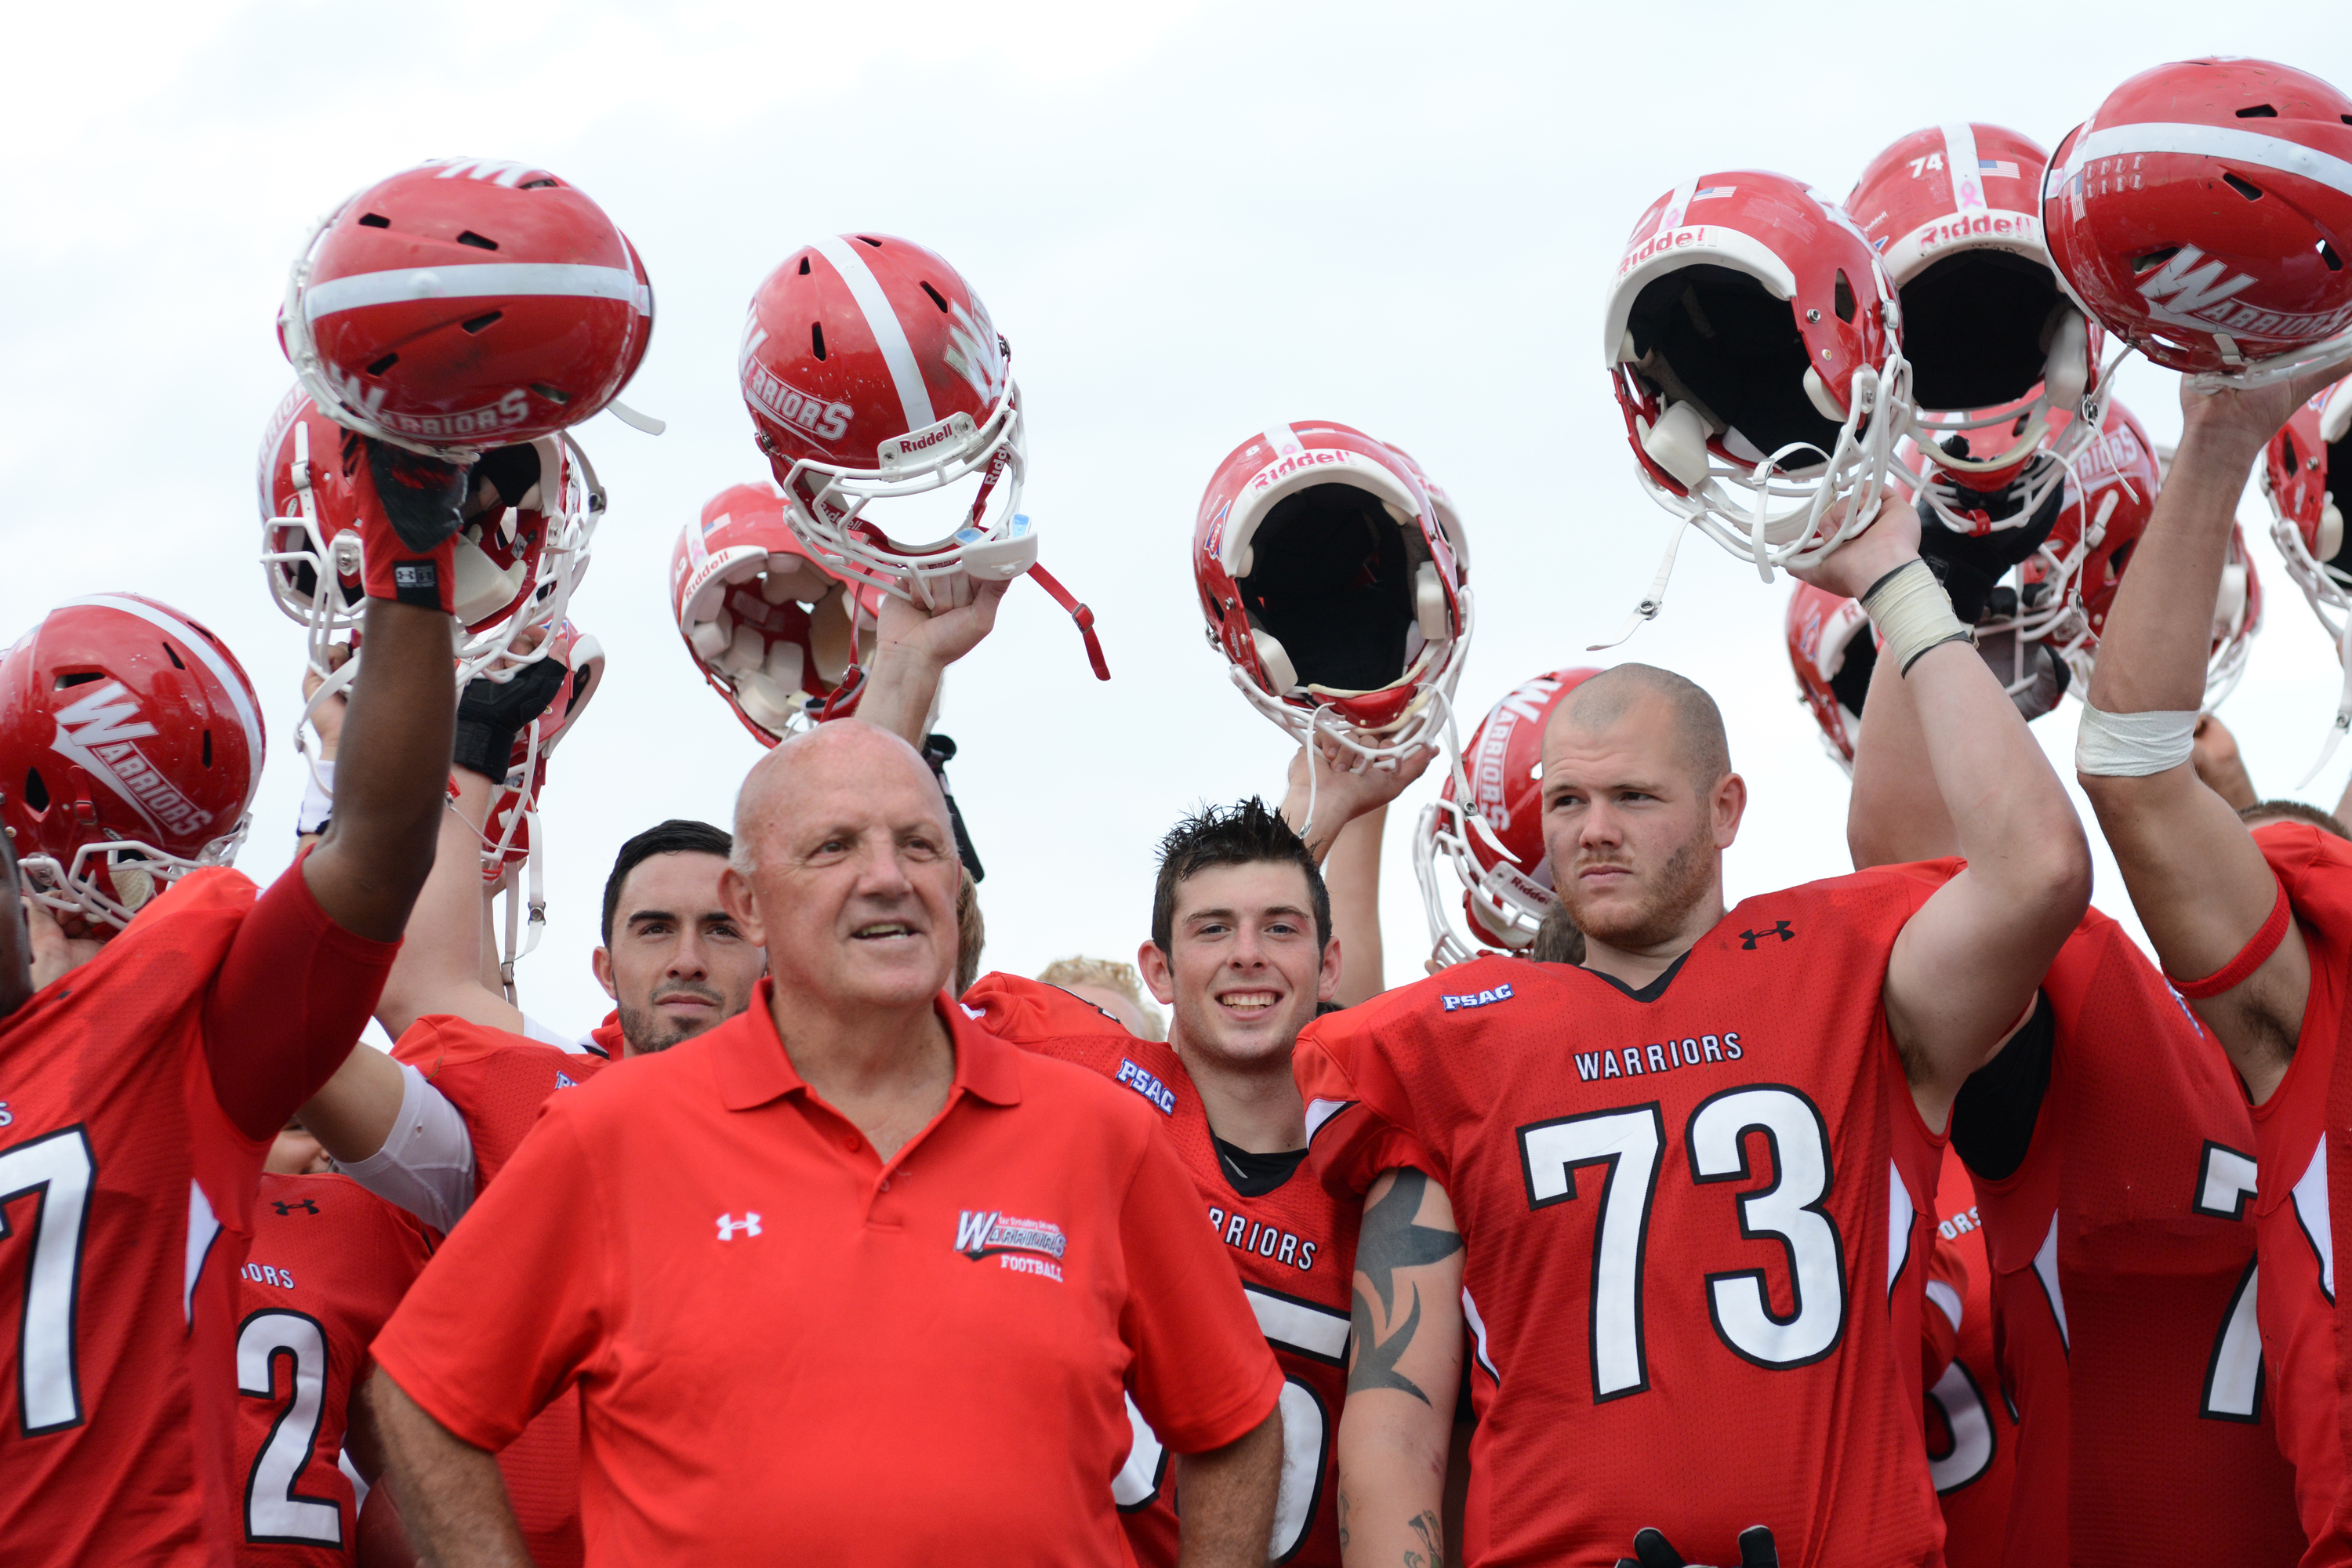 Documentary Video for East Stroudsburg University warriors